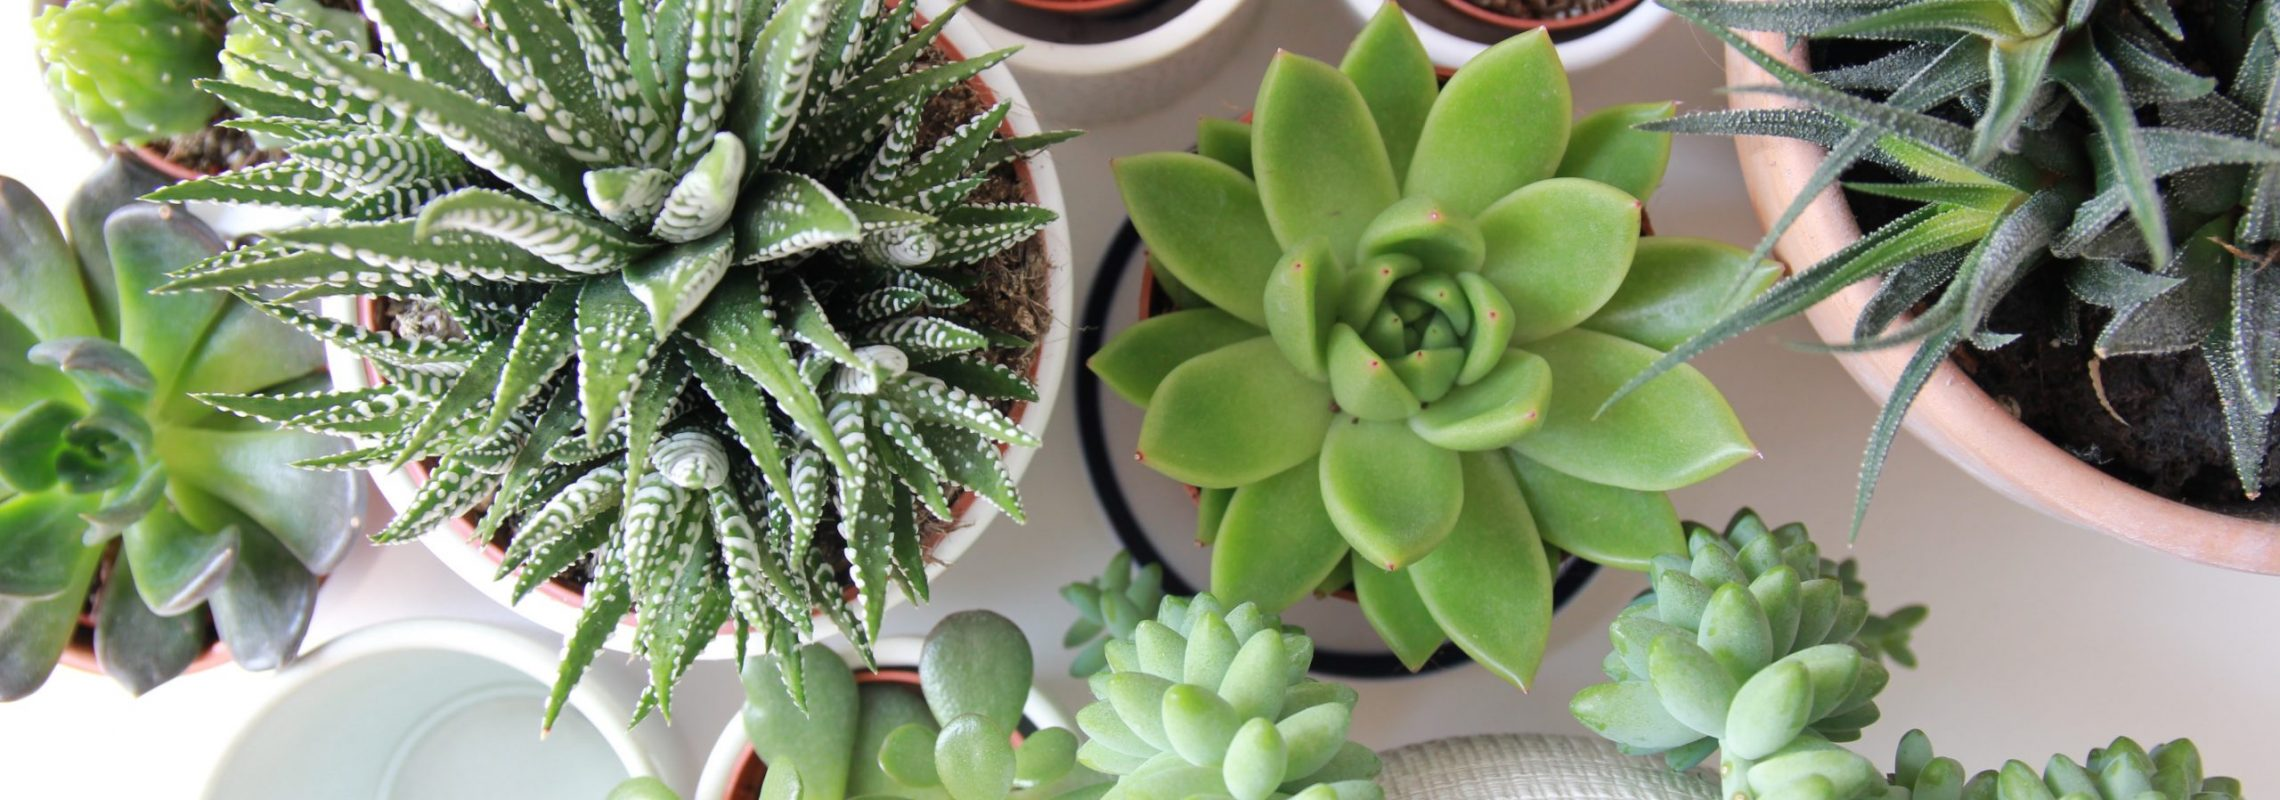 Image of Potted Succulents